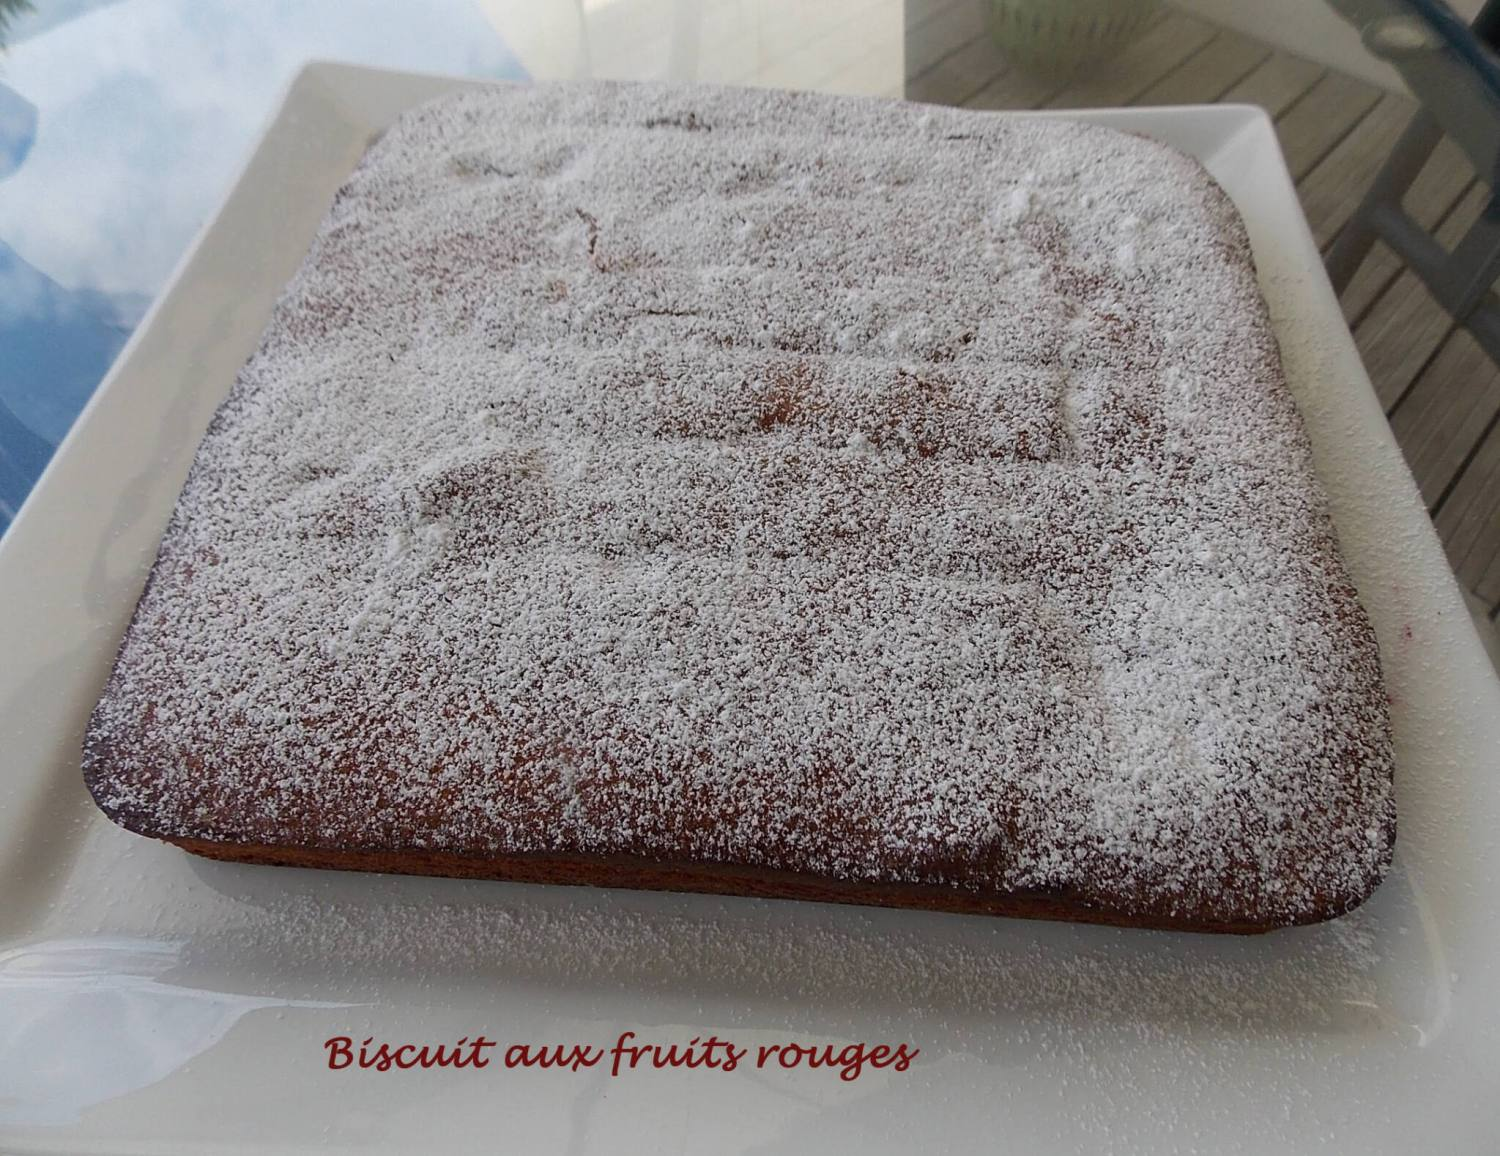 biscuit-aux-fruits-rouges-dscn6143